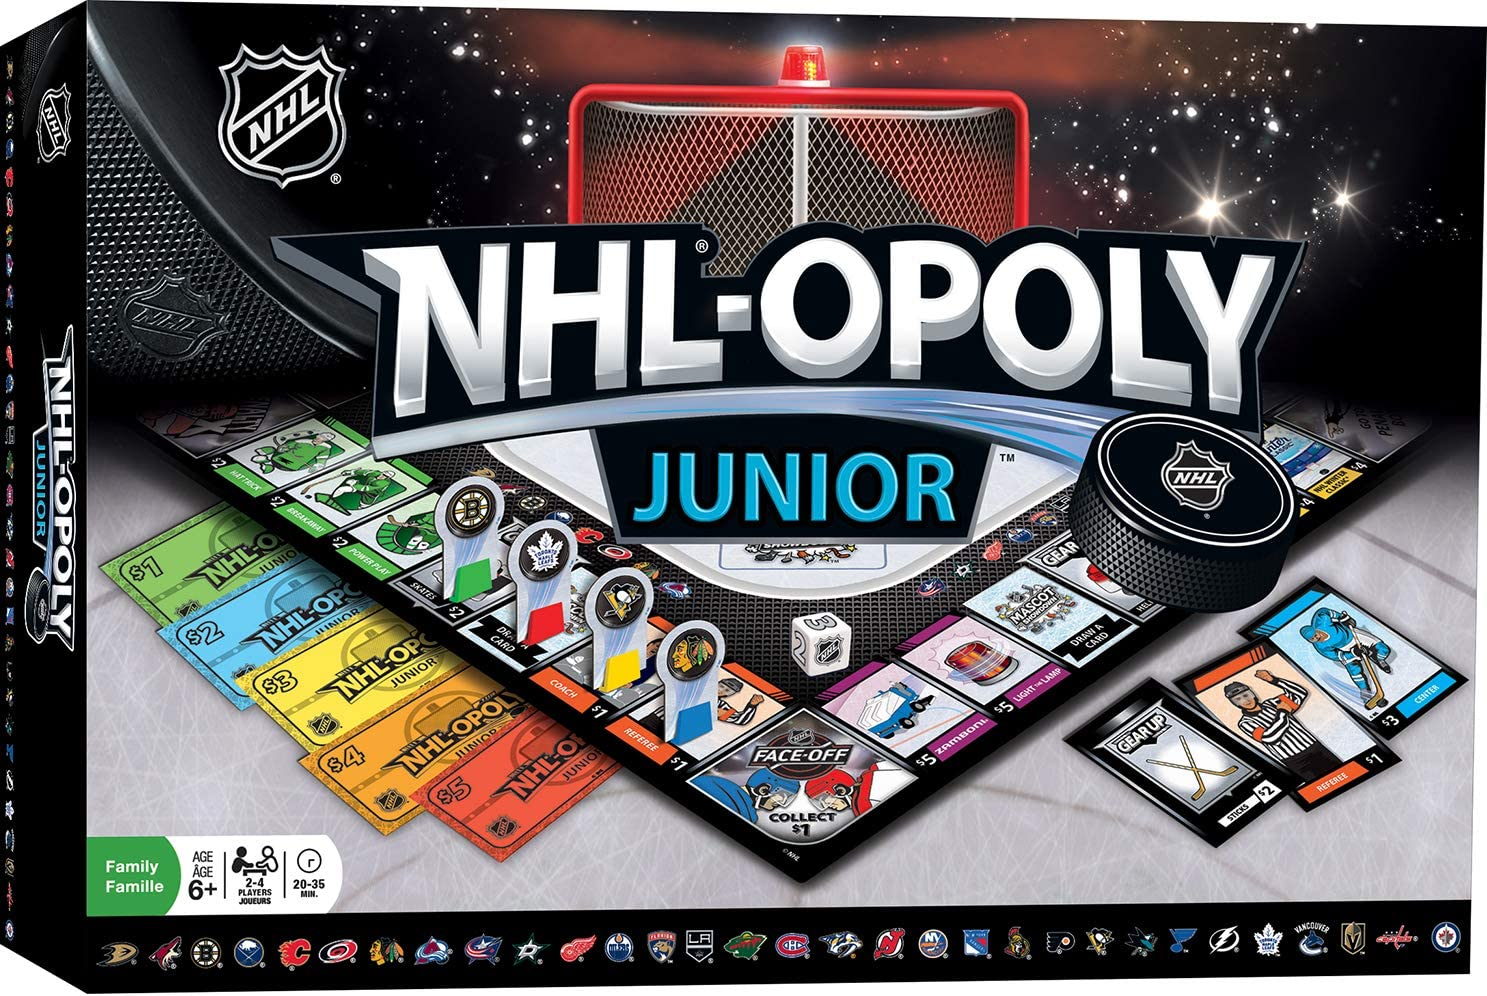 MasterPieces NHL Opoly Junior Board Game, for 2-4 Players, Ages 6+